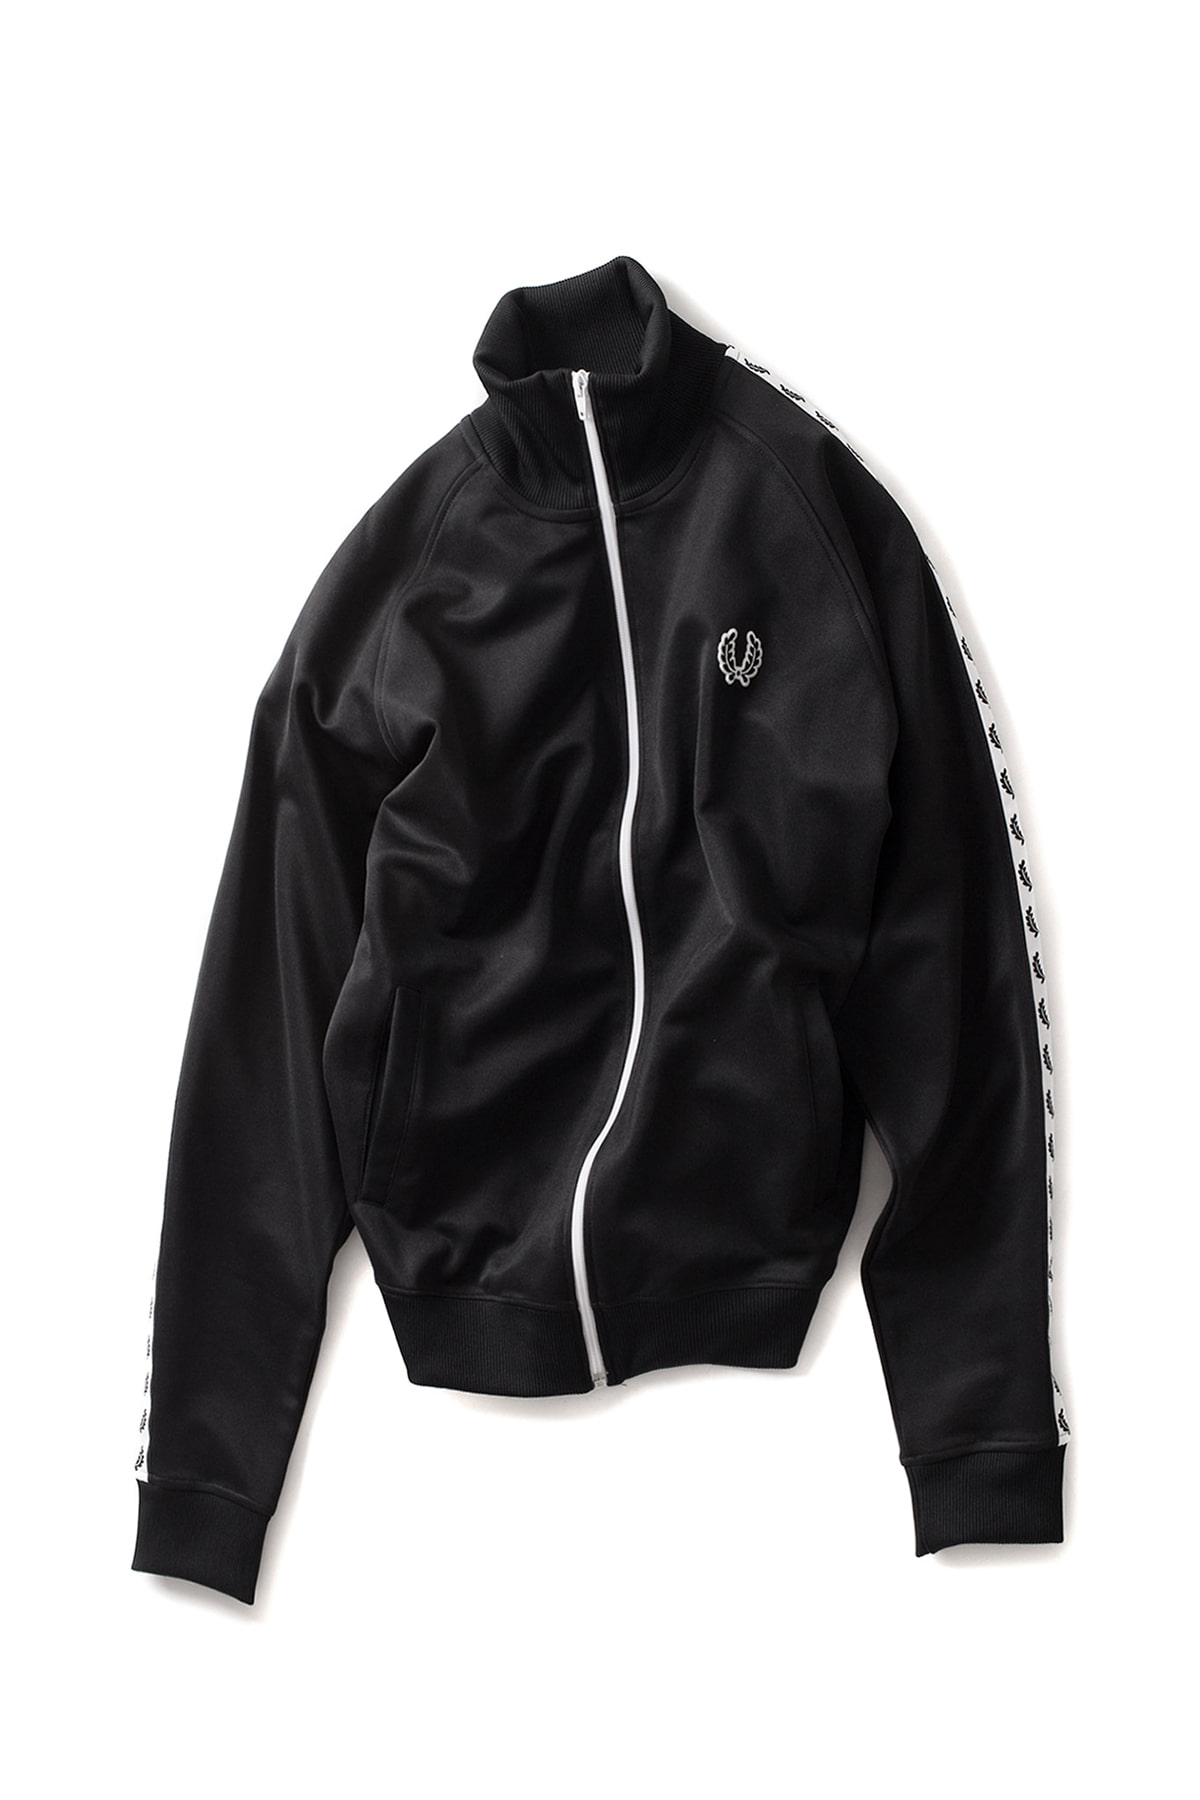 FRED PERRY : Taped Track Jacket (Black)